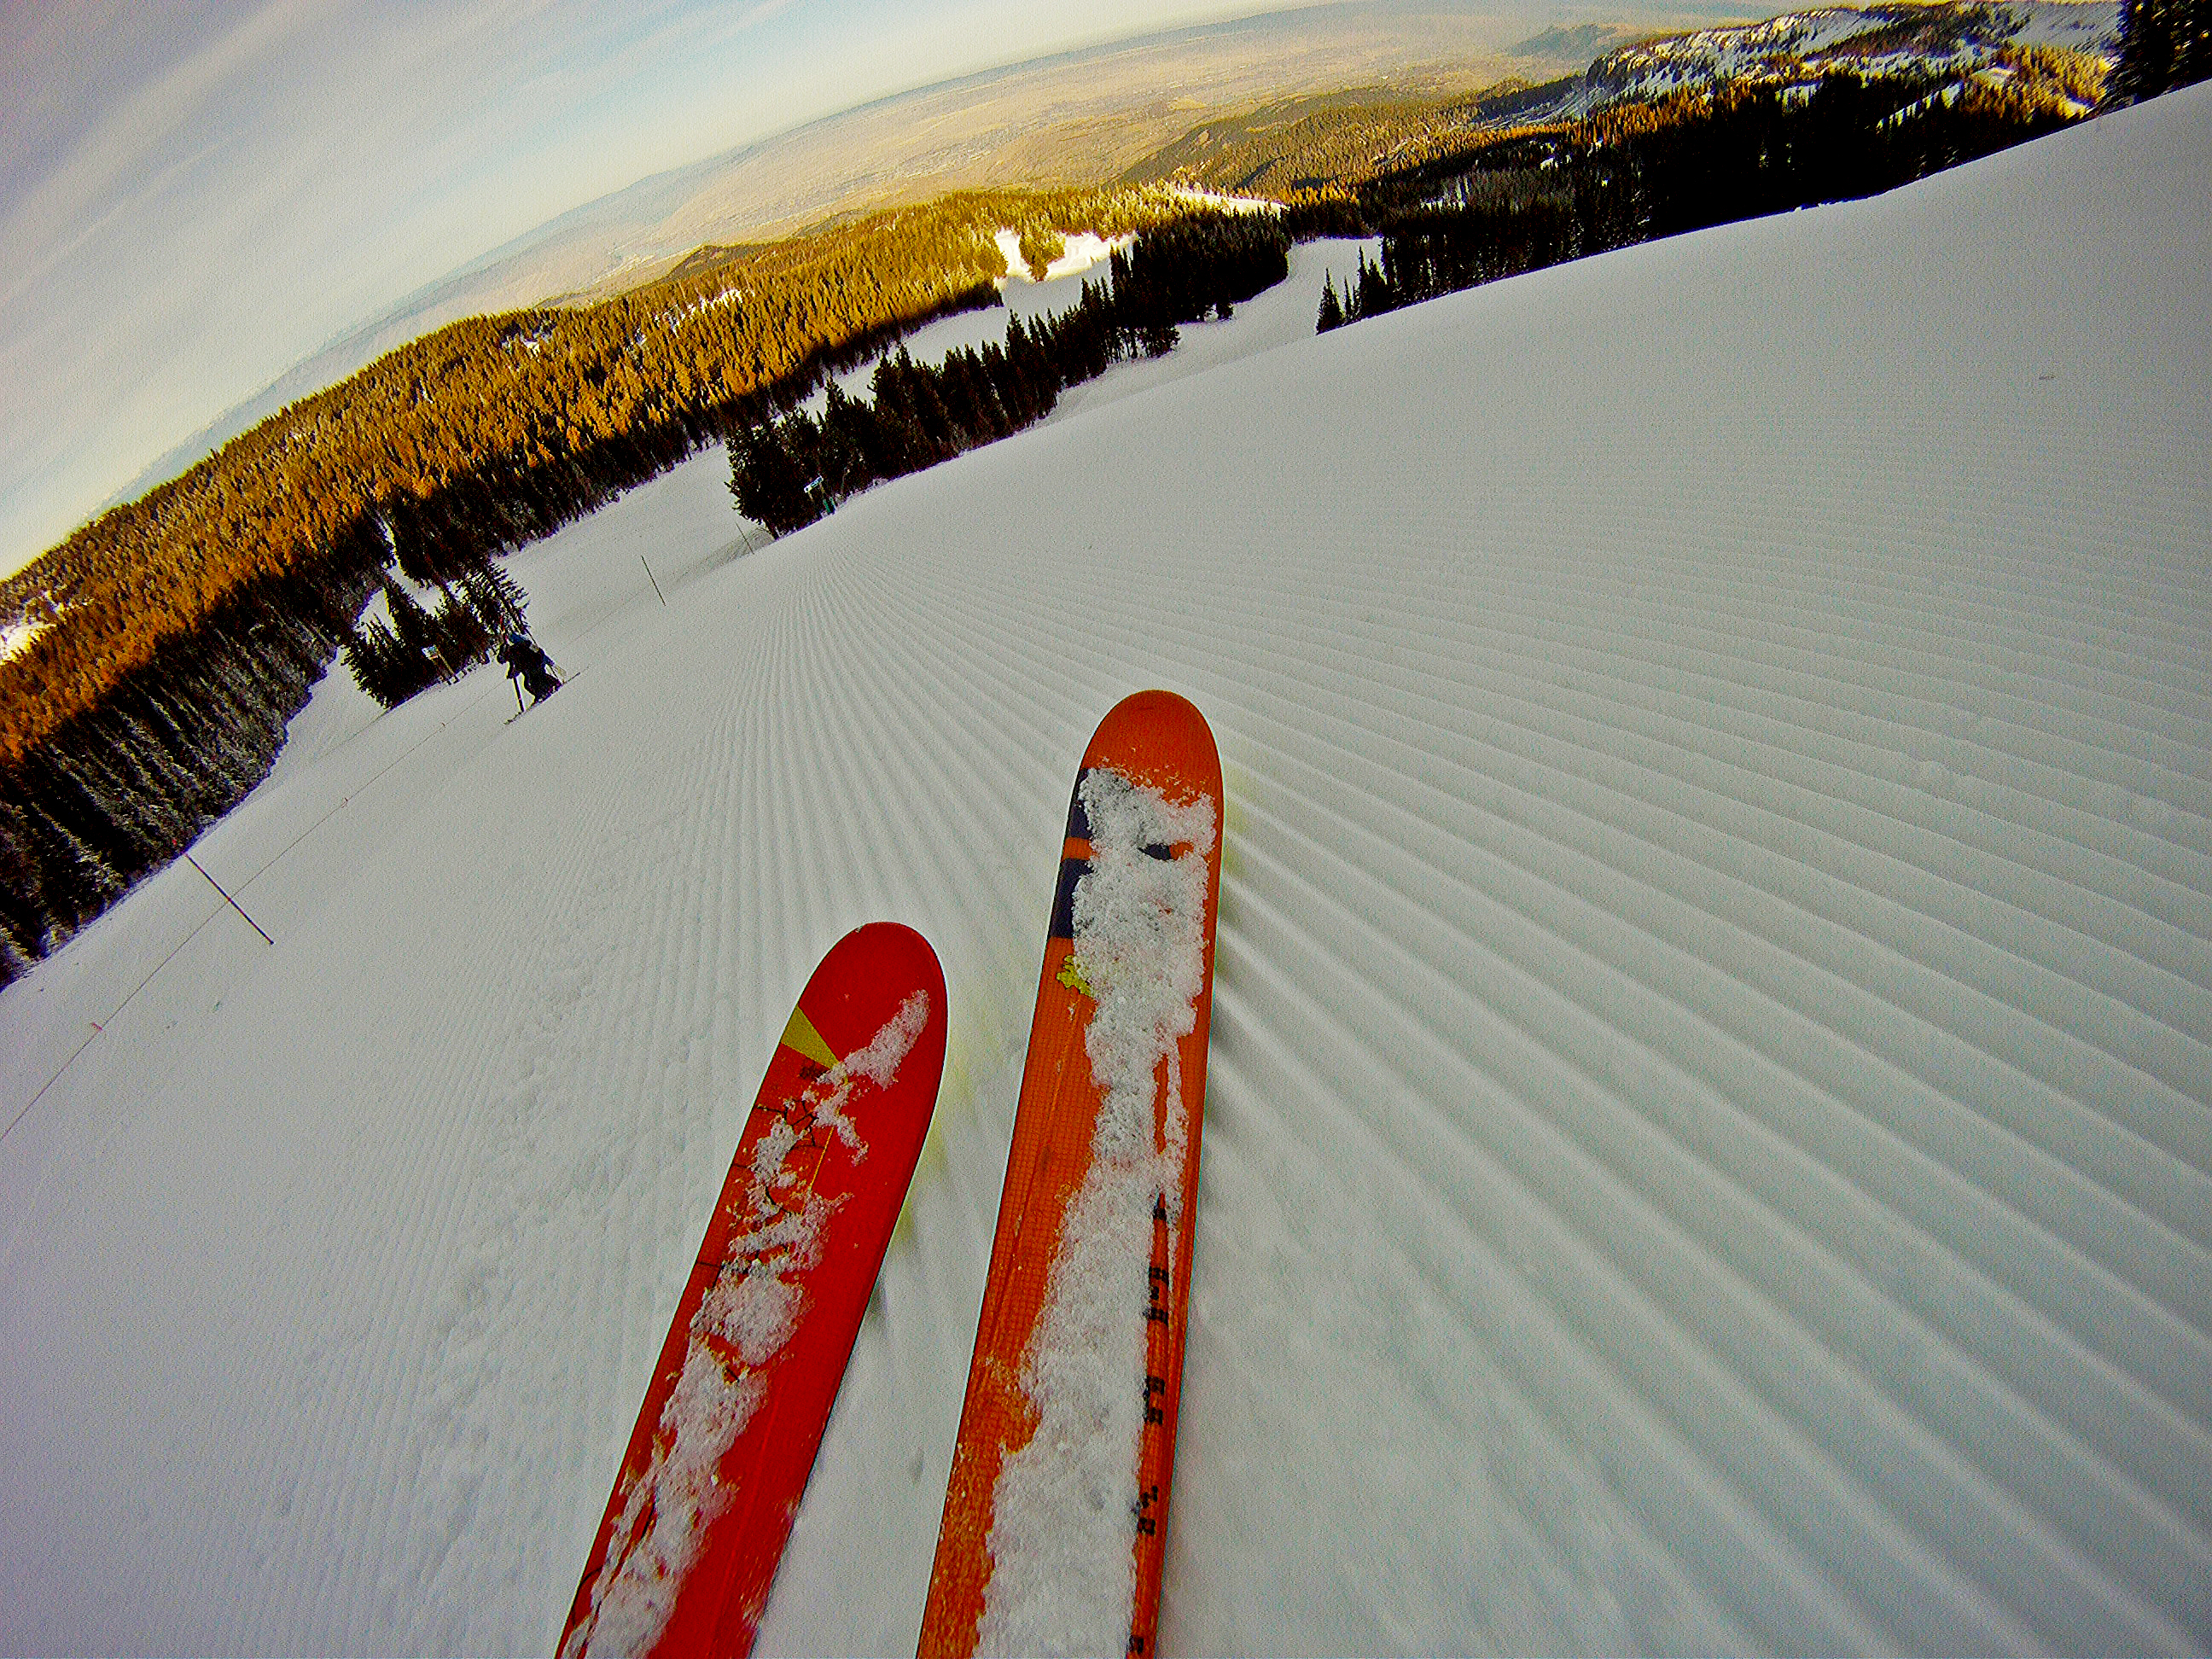 Red skis on fresh groomed snow